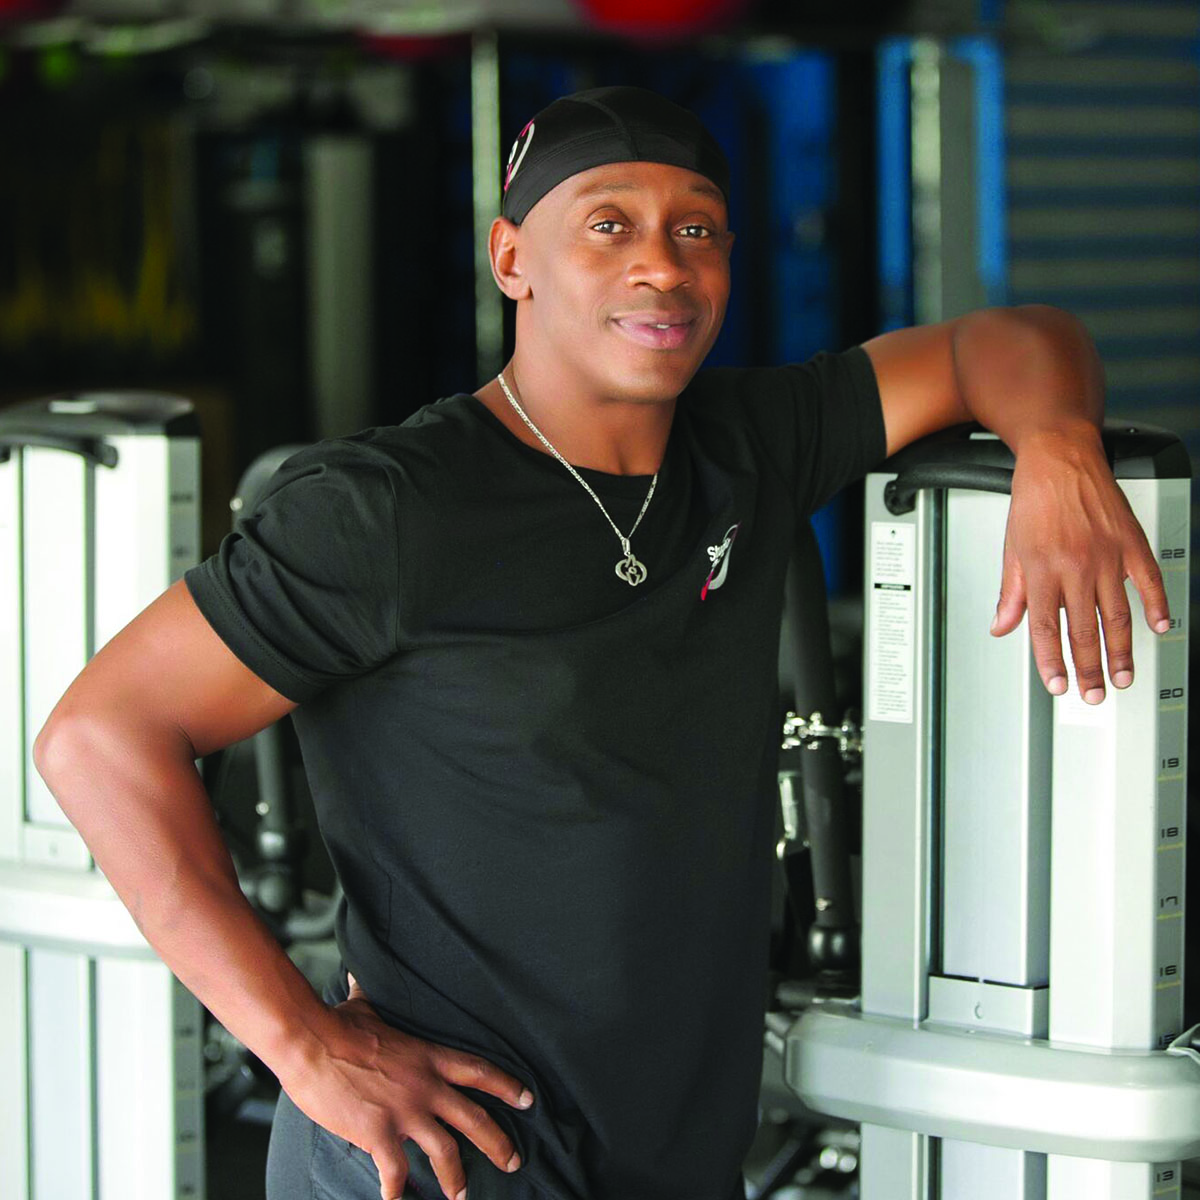 Kendall Holmes, C.P.T. - Founder & Functional Movement SpecialistKendall is a Certified Personal Trainer through the American Council on Exercise, with over 25 years in the fitness industry. His reputation and coaching experience has been primarily developed around four segments of the population – athletes (including professional), weight loss/control, rehabilitation and baby boomers. He holds additional certifications in Massage Therapy, BOSU Fitness Instructor, Total Gym Personal Trainer, and Kickboxing Fitness Instructor. He has been recognized as an outstanding trainer, as well as humanitarian for his expertise and genuine care for people.